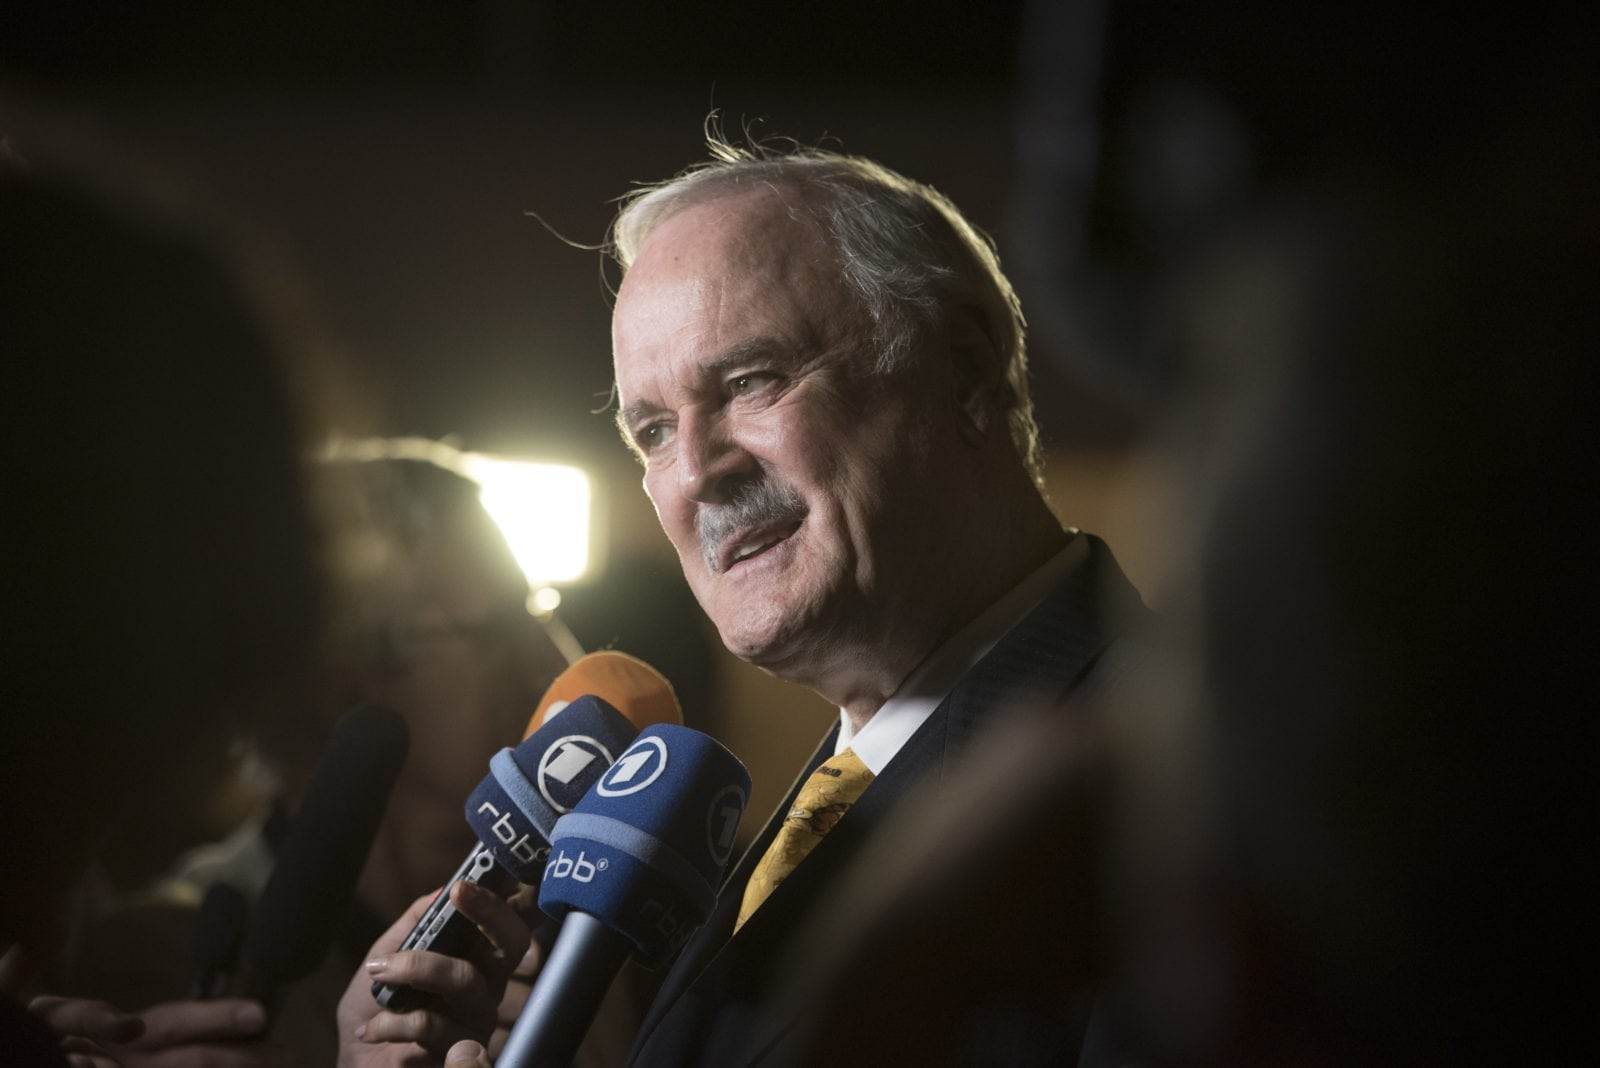 BERLIN, GERMANY - SEPTEMBER 13: John Cleese attends the 55th Rose d'Or Award at Axica-Kongress- und Tagungszentrum on September 13, 2016 in Berlin, Germany. (Photo by Clemens Bilan/Getty Images)